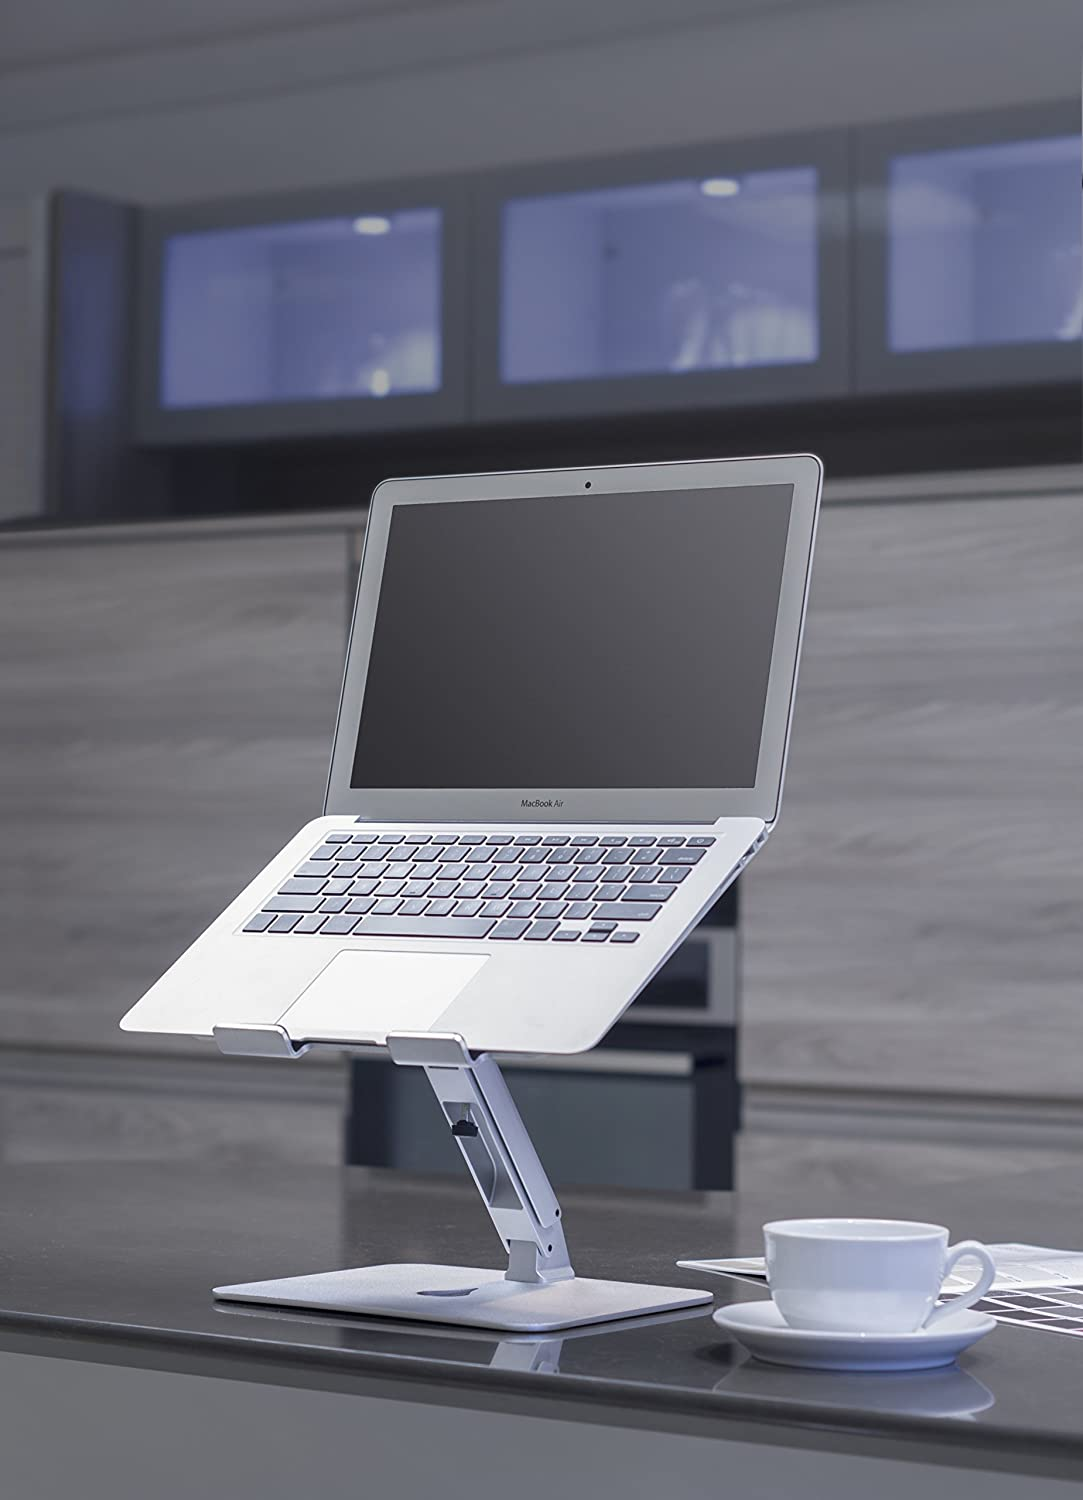 2-in-1 Portable Stand with 360 Degree Base Rotation for Smartphones and up to 15 Laptops